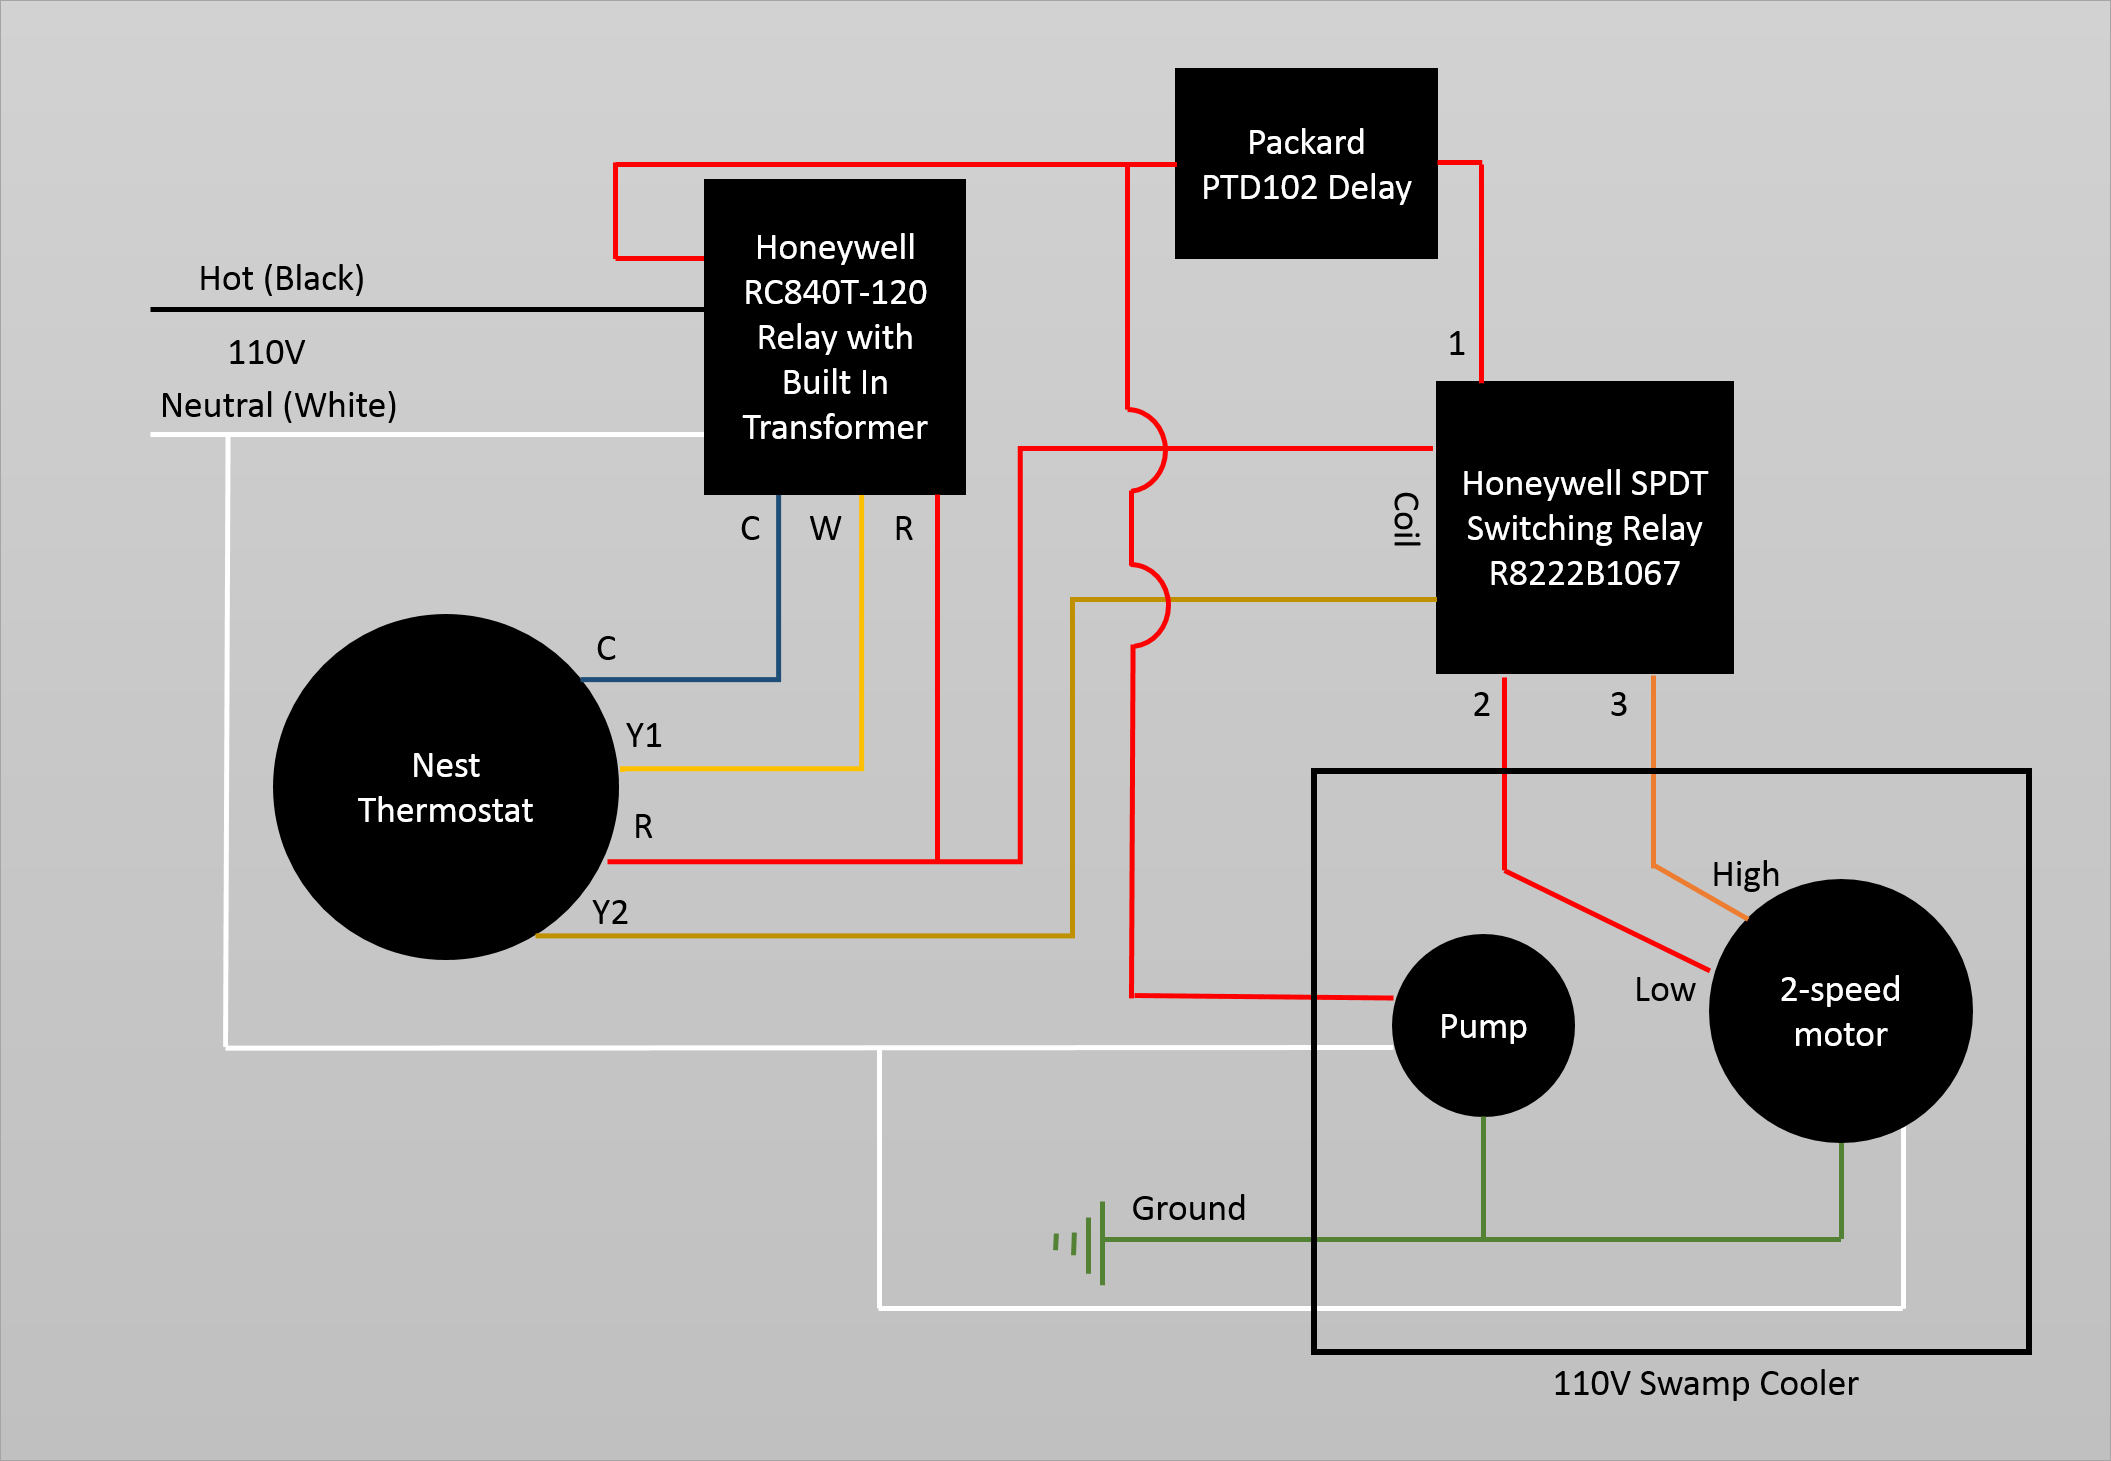 Wiring - Controlling 110V Swamp Cooler Using Nest Thermostat - Home - What Is The Wiring Diagram For A Forced Air Furnace Using The Nest Thrmostat